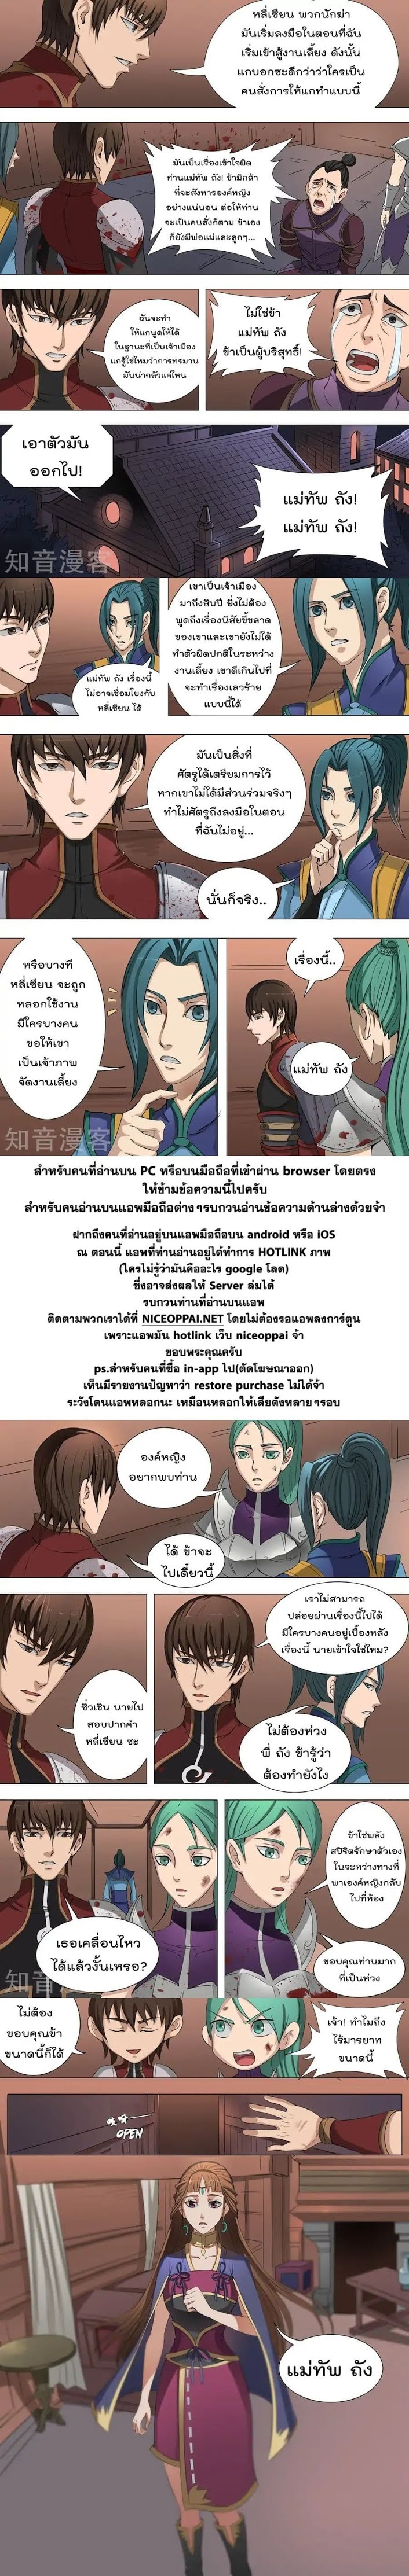 Tangyan in the other world - หน้า 6